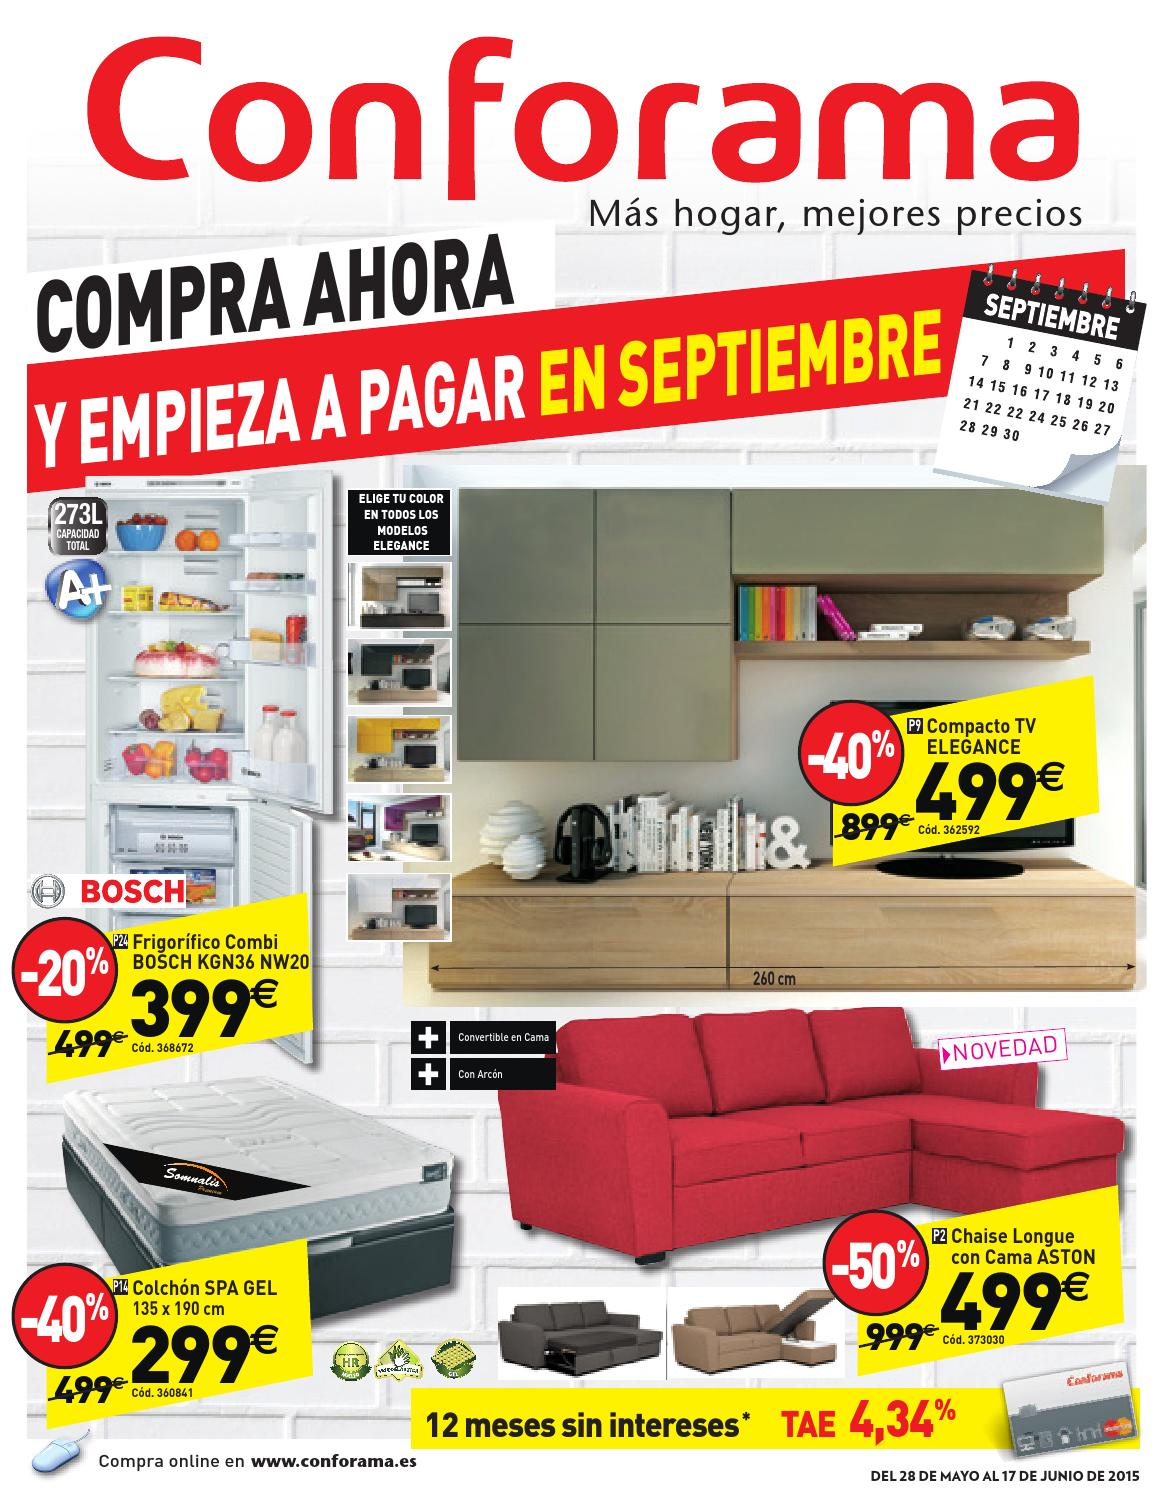 Conforama Bettsofa Argan Conforama Catalogo 28mayo 27junio2015